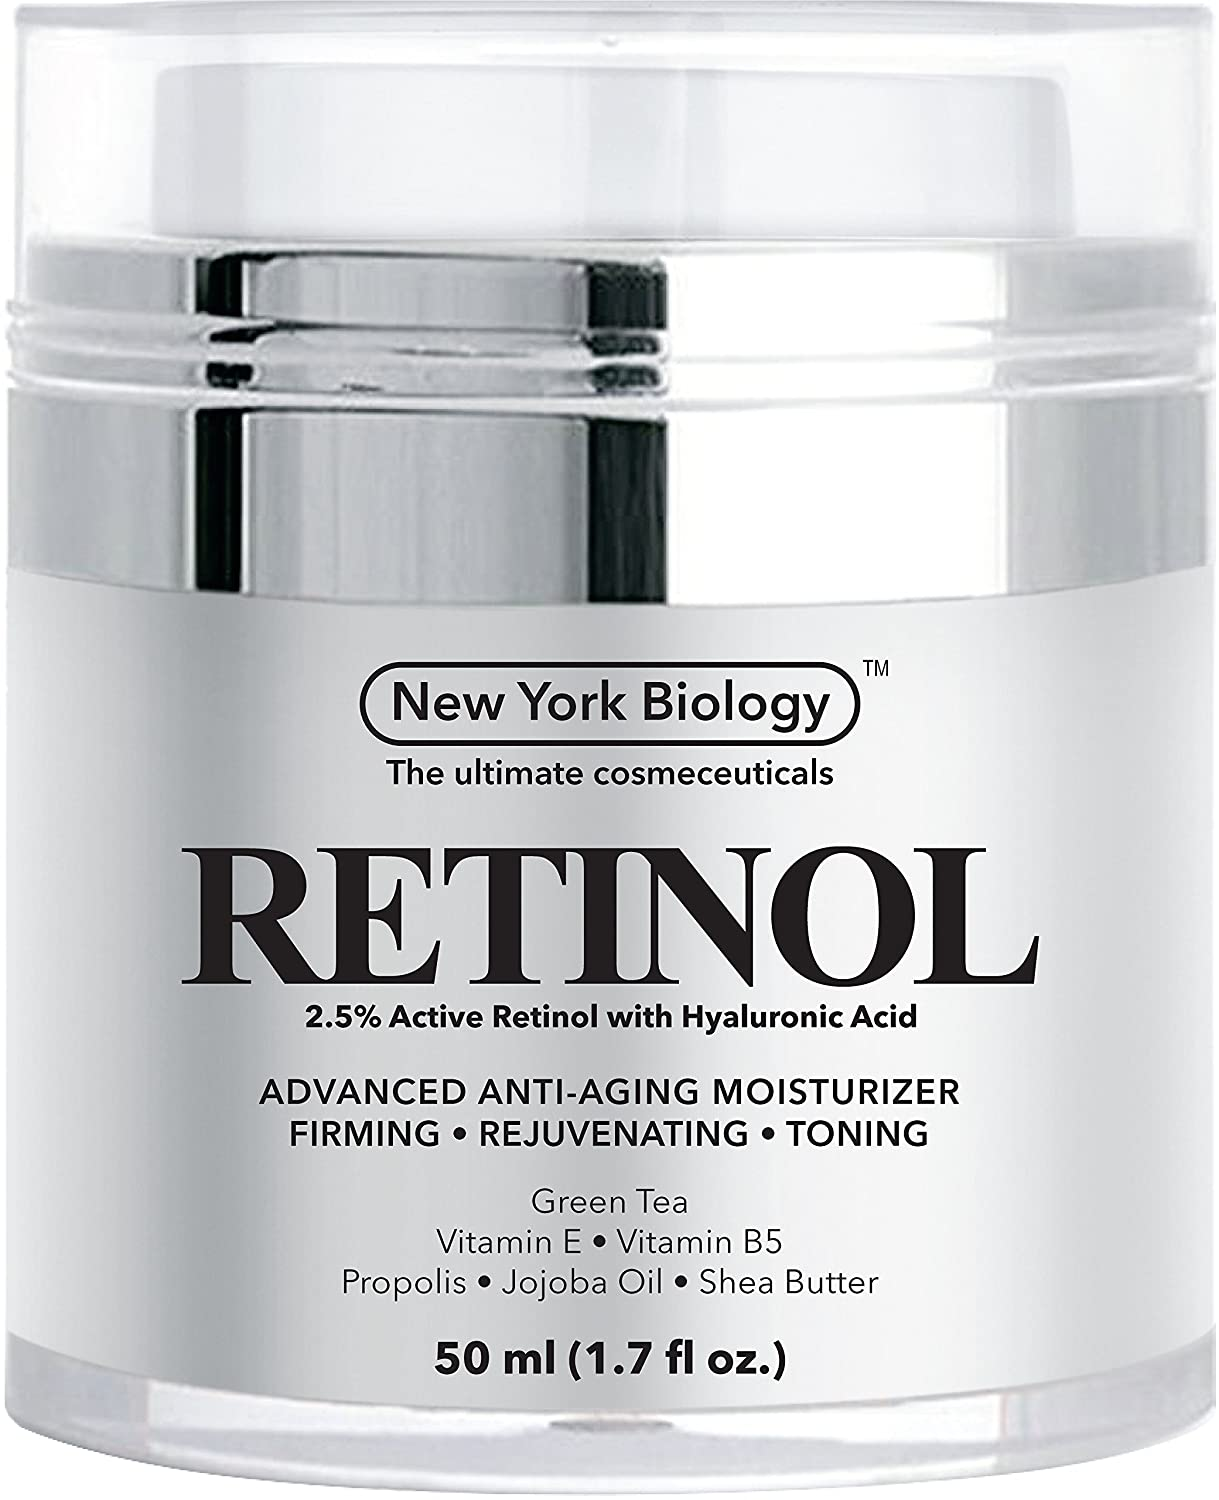 Retinol amounts in moisturizers - Amazon Com Retinol Cream Moisturizer With Hyaluronic Acid Daily Moisturizing Cream Helps Fight Signs Of Aging And Get Rid Of Wrinkles From Face And Eye